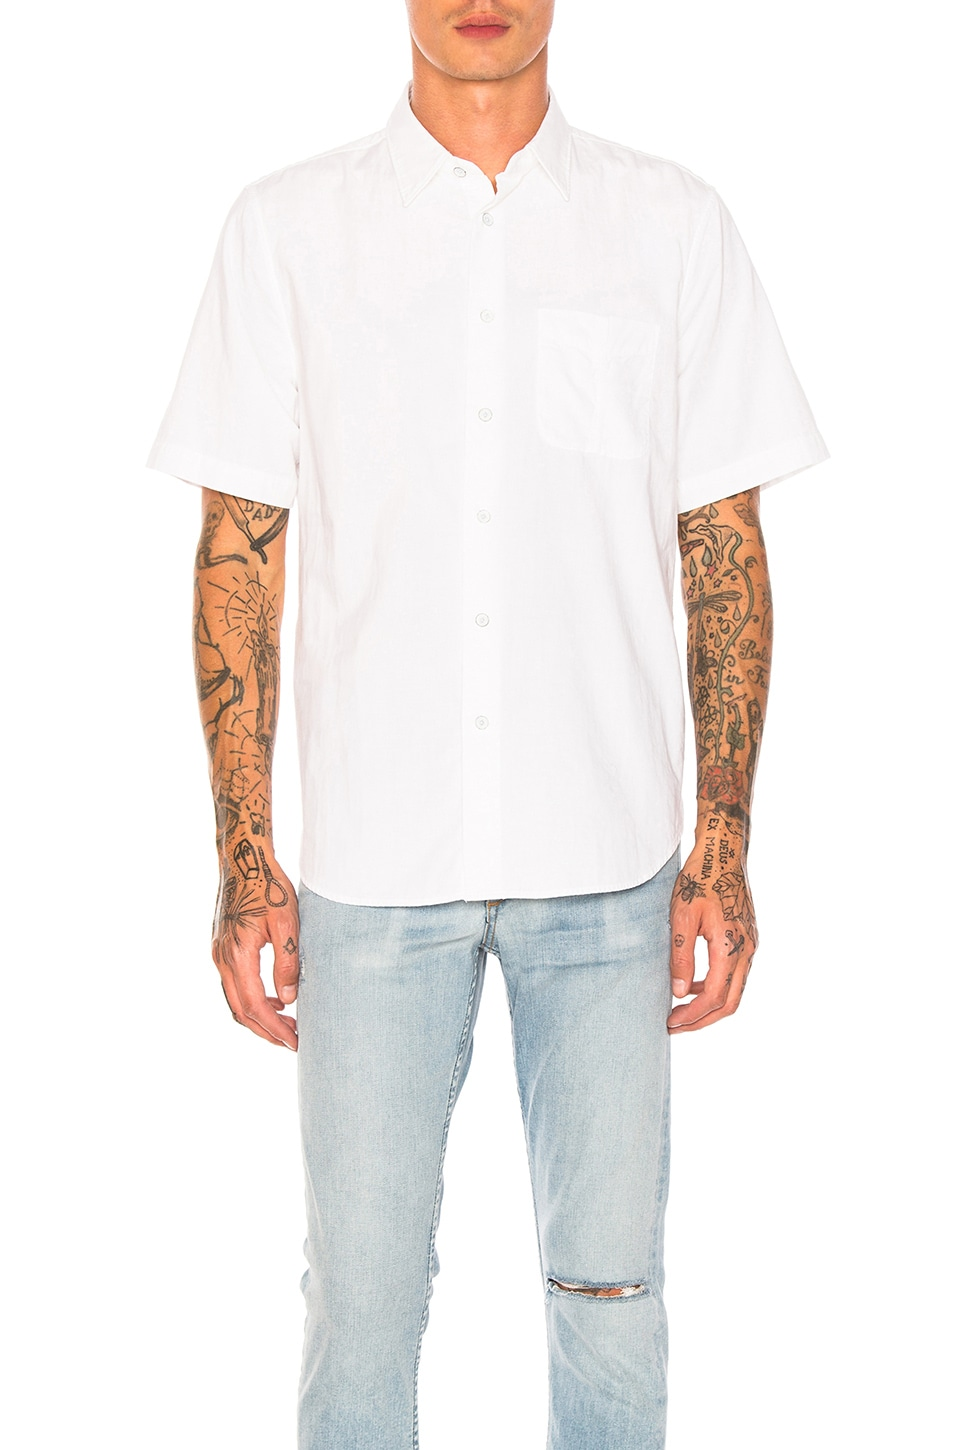 Rag & Bone Standard Issue Beach Shirt in White